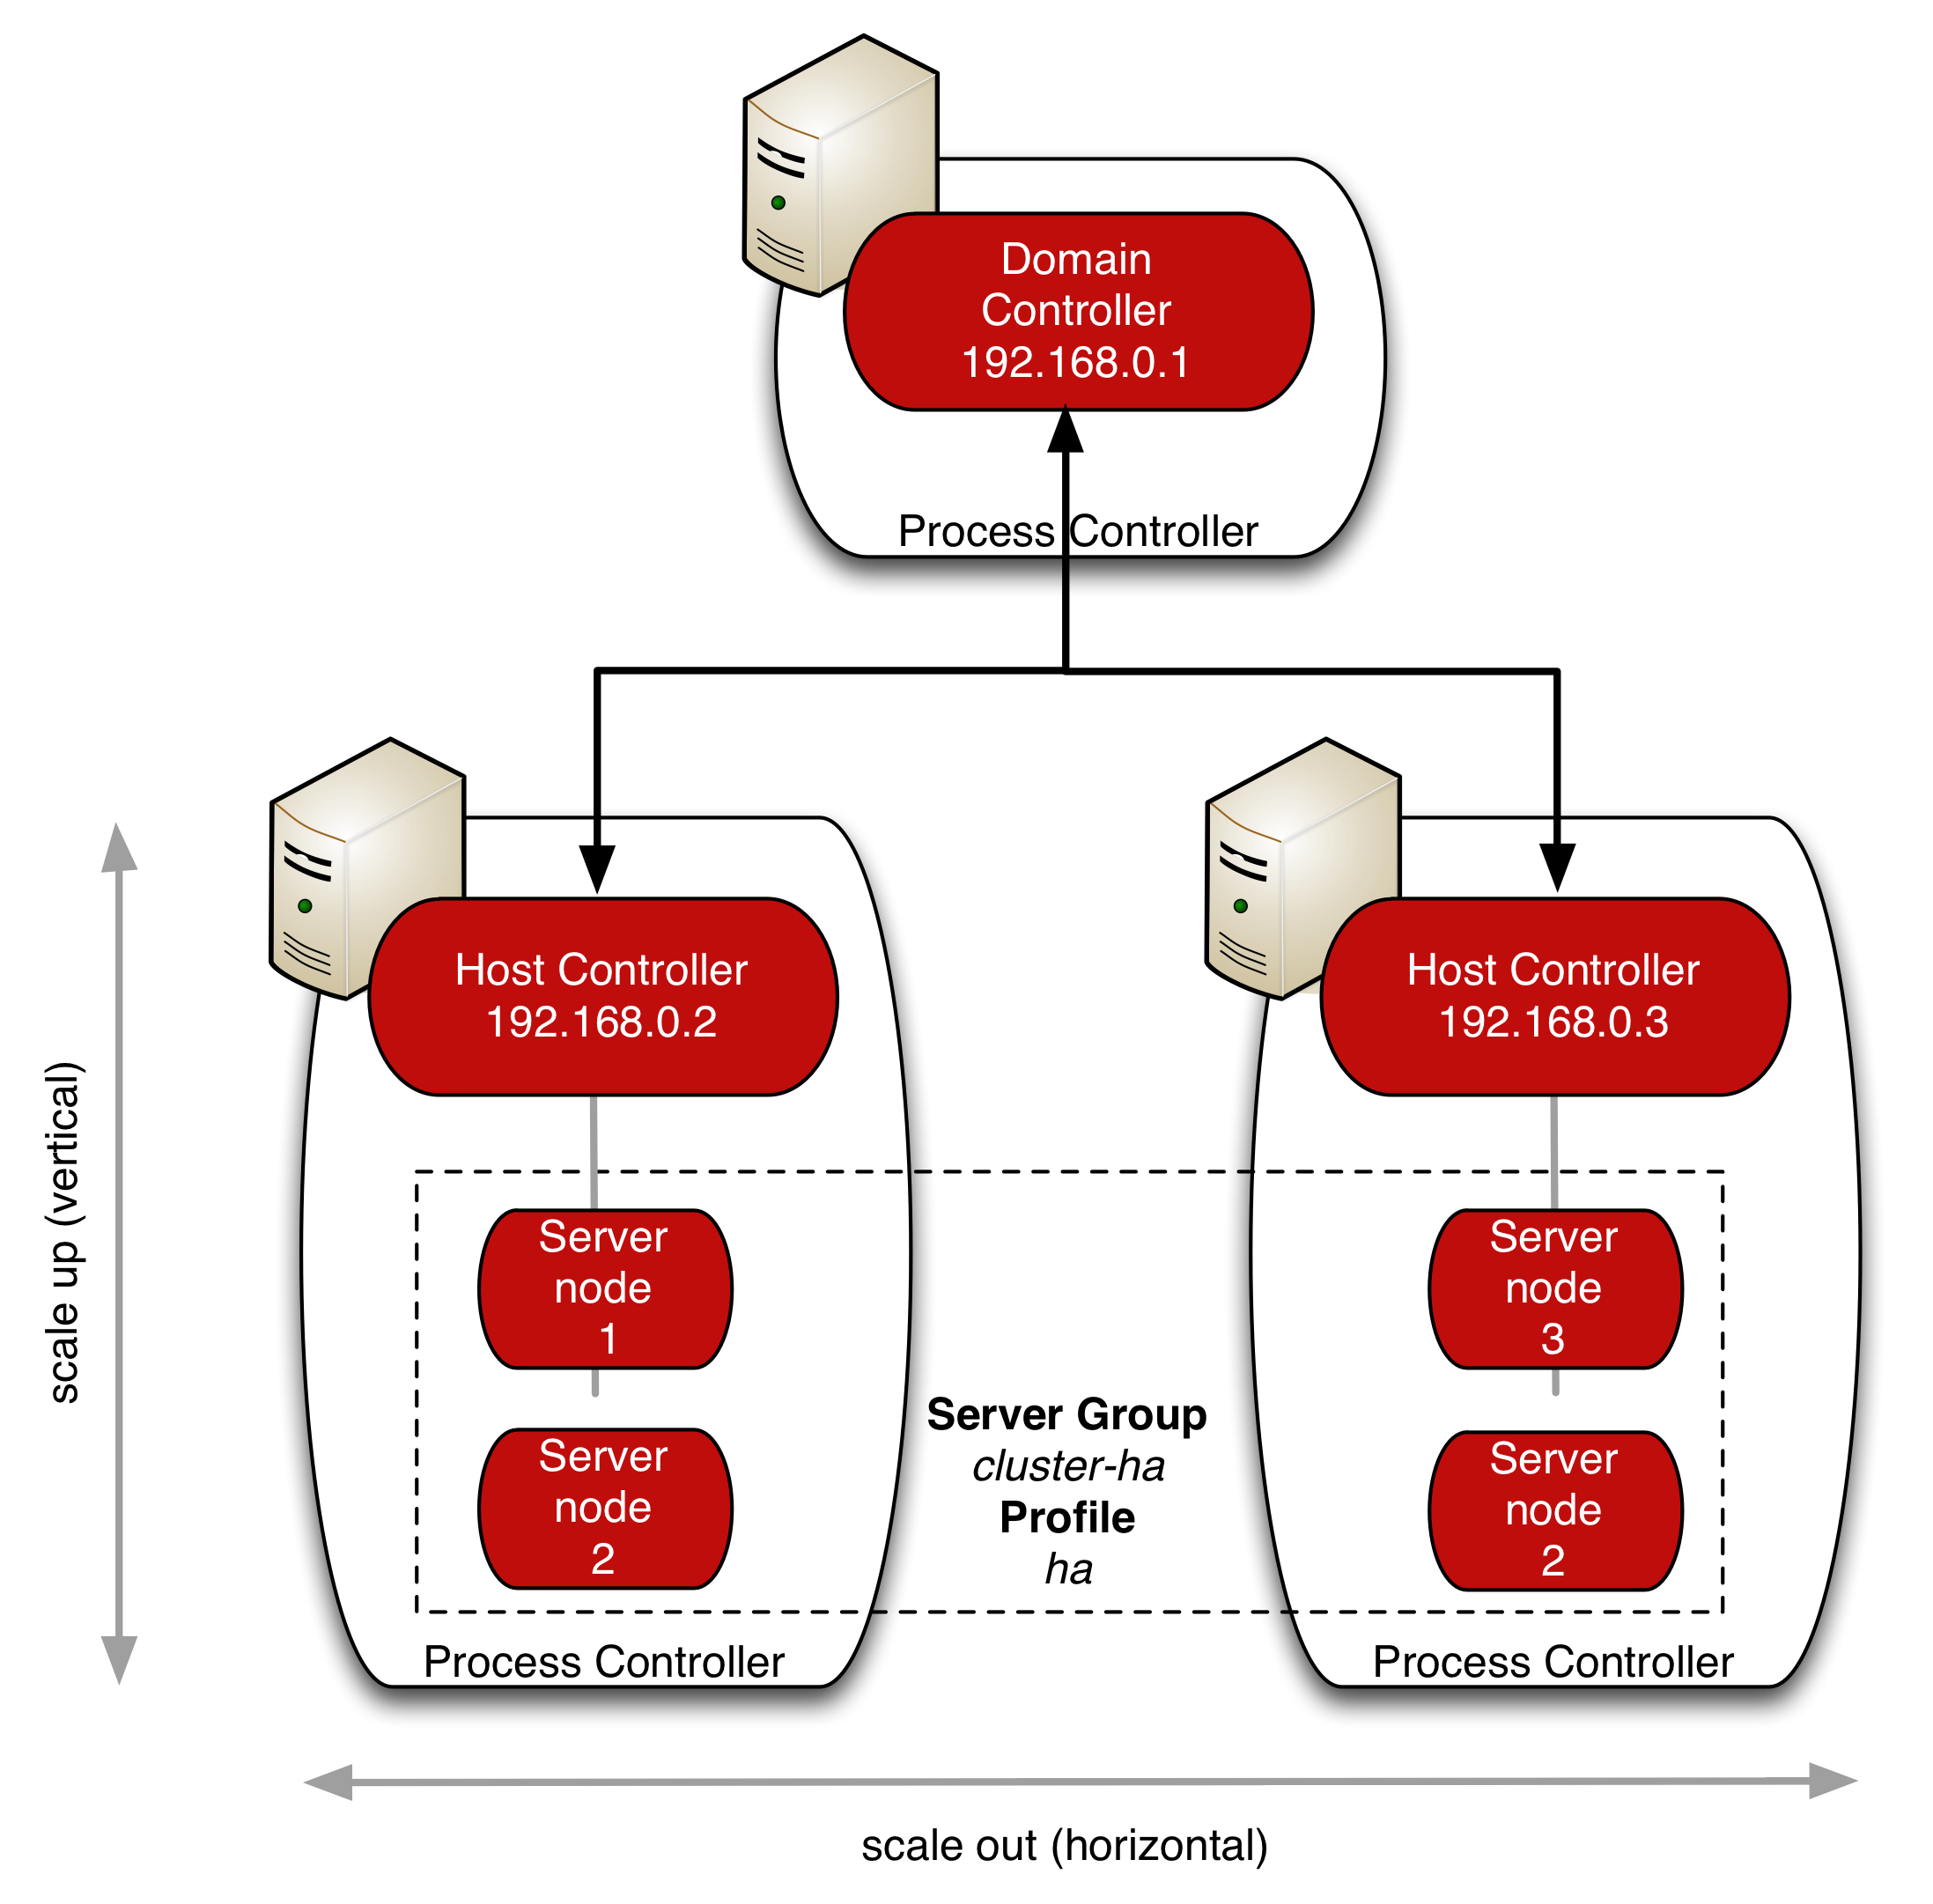 Managing cluster nodes in domain mode of JBoss AS 7 / EAP 6